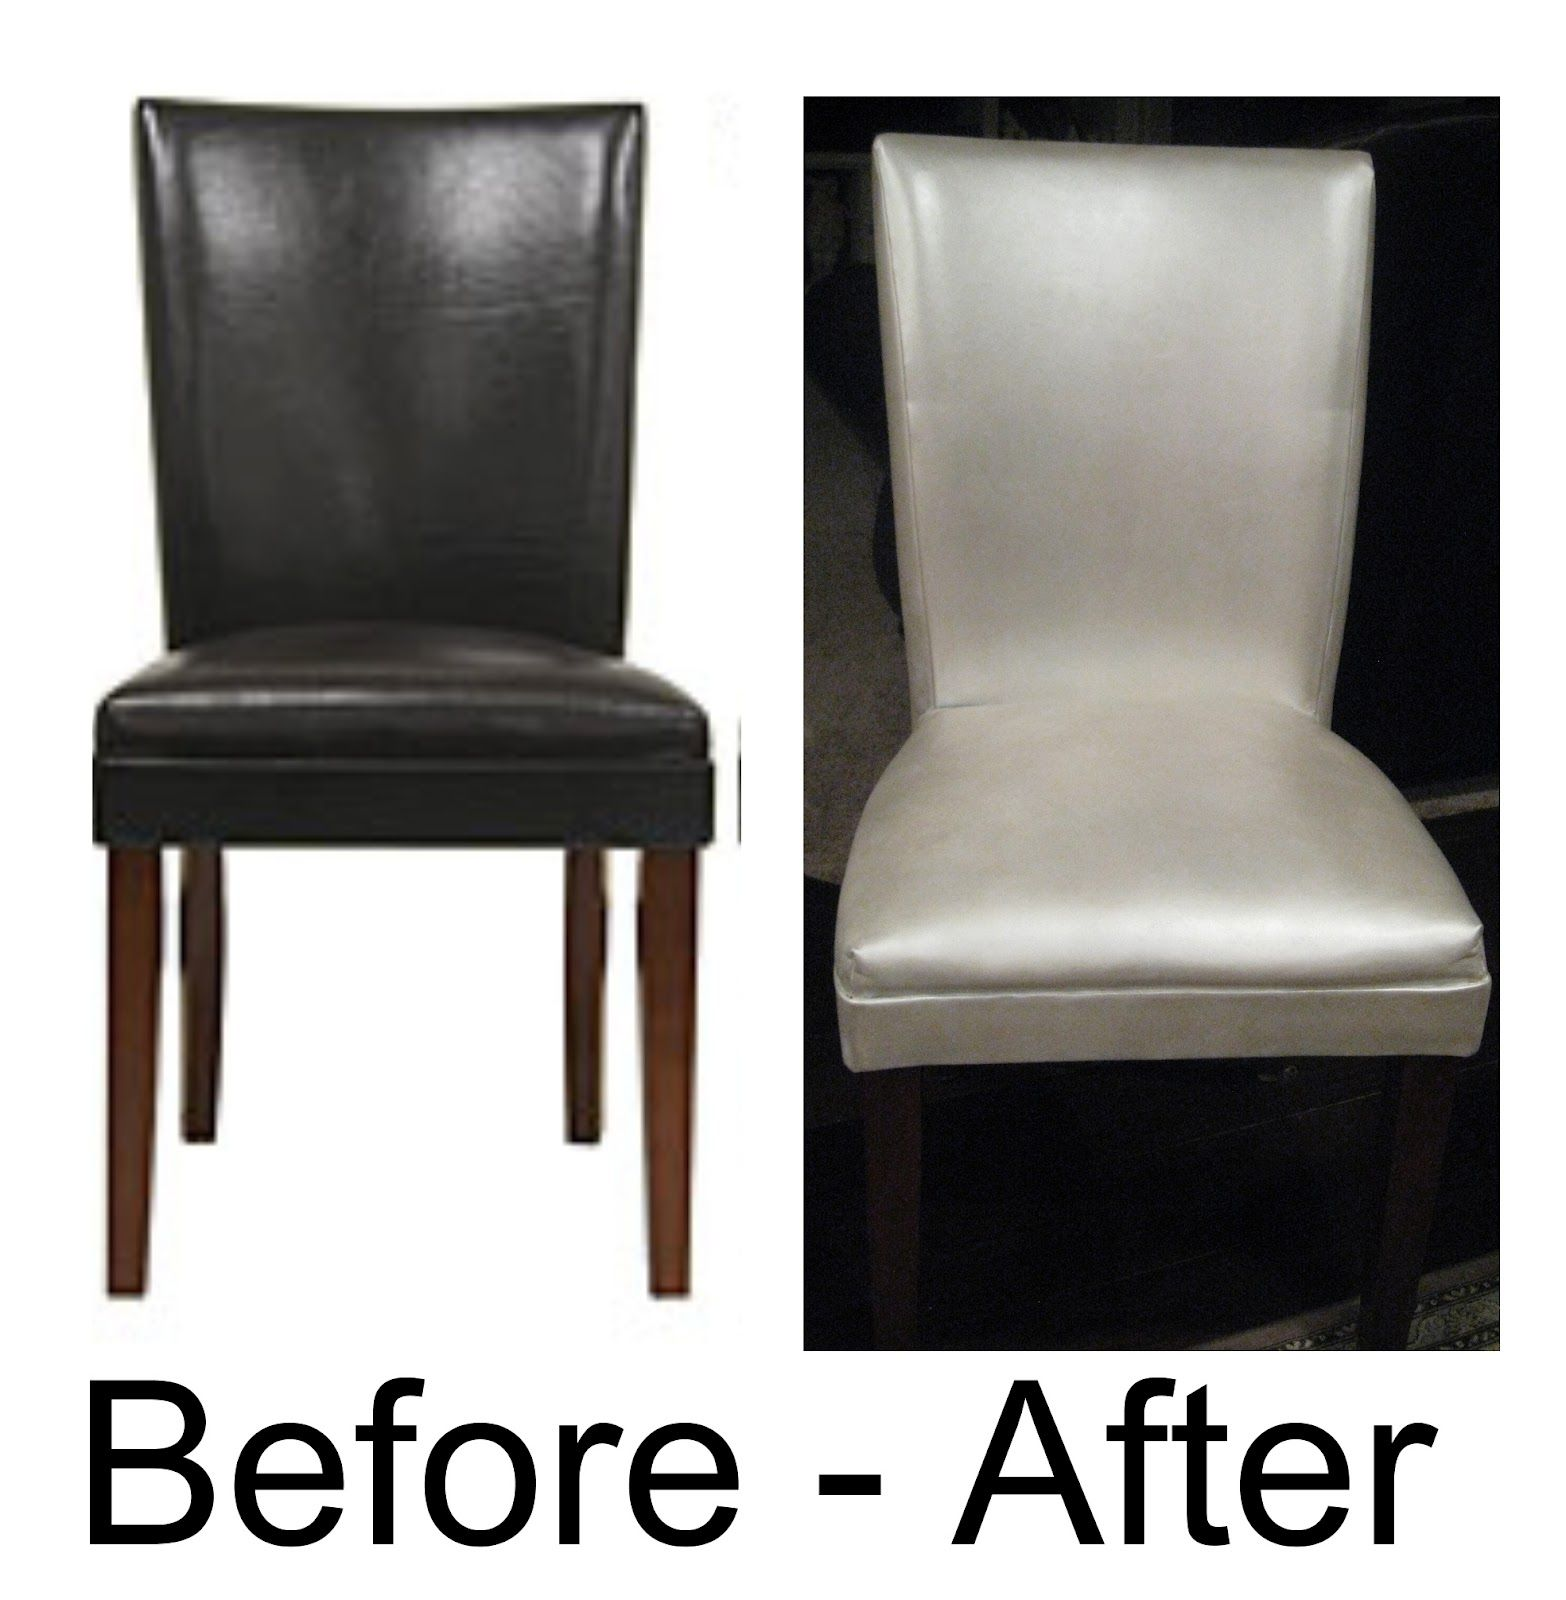 Exceptionnel DIY: Painted Leather Dining Chairs Using Angelus Paint. (the Professionals  Use It For Painting Shoes.) Great Tips For Painting Leather.